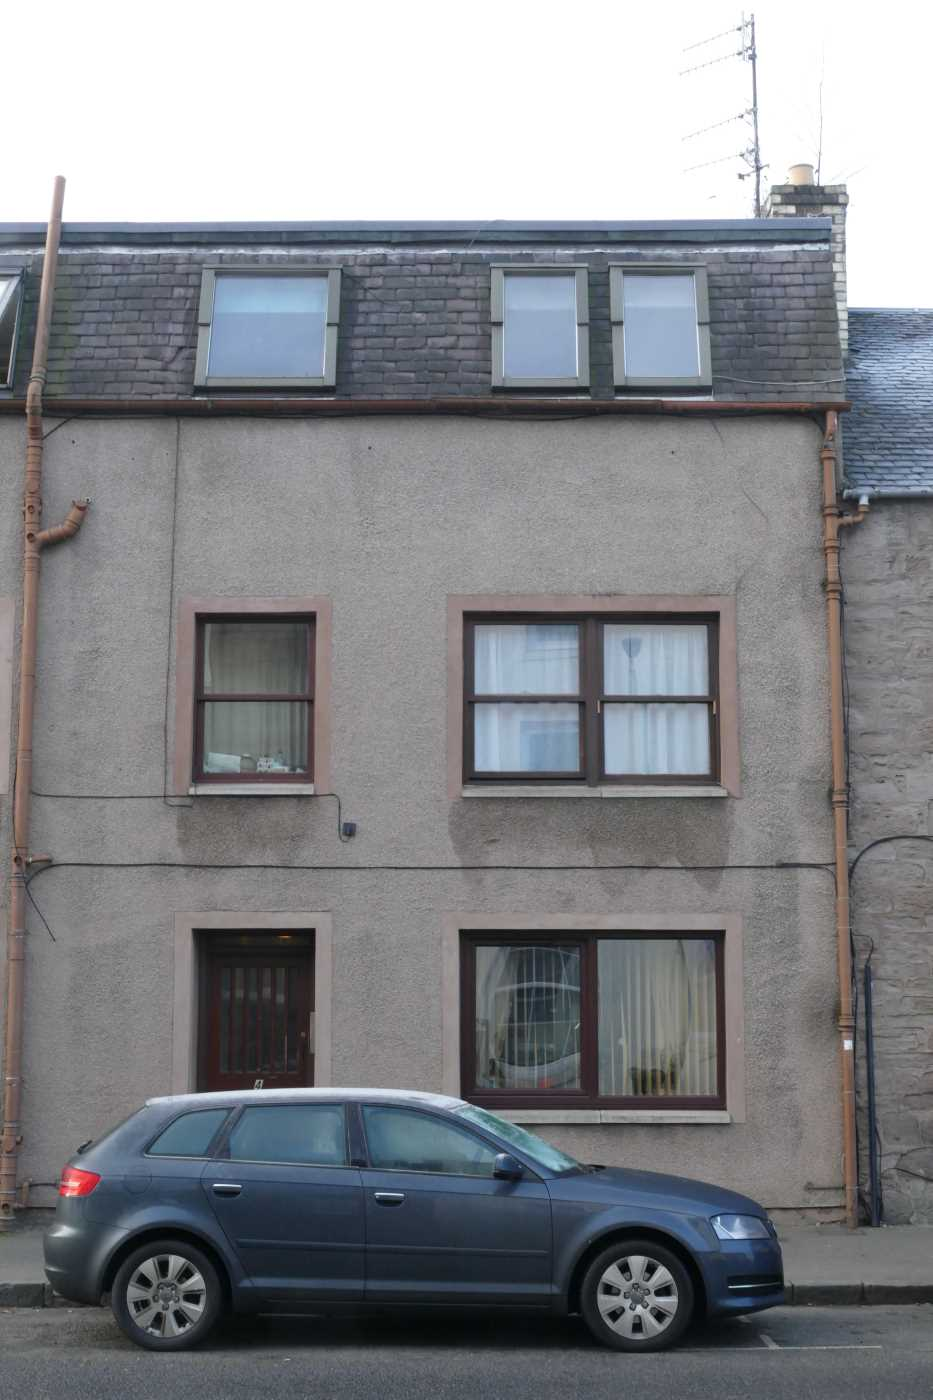 We are pleased to offer for rent this bright top floor studio flat located in the heart of the city centre. The property is part furnished with an open plan L shaped layout, comprising of living area with kitchen and a separate bathroom.